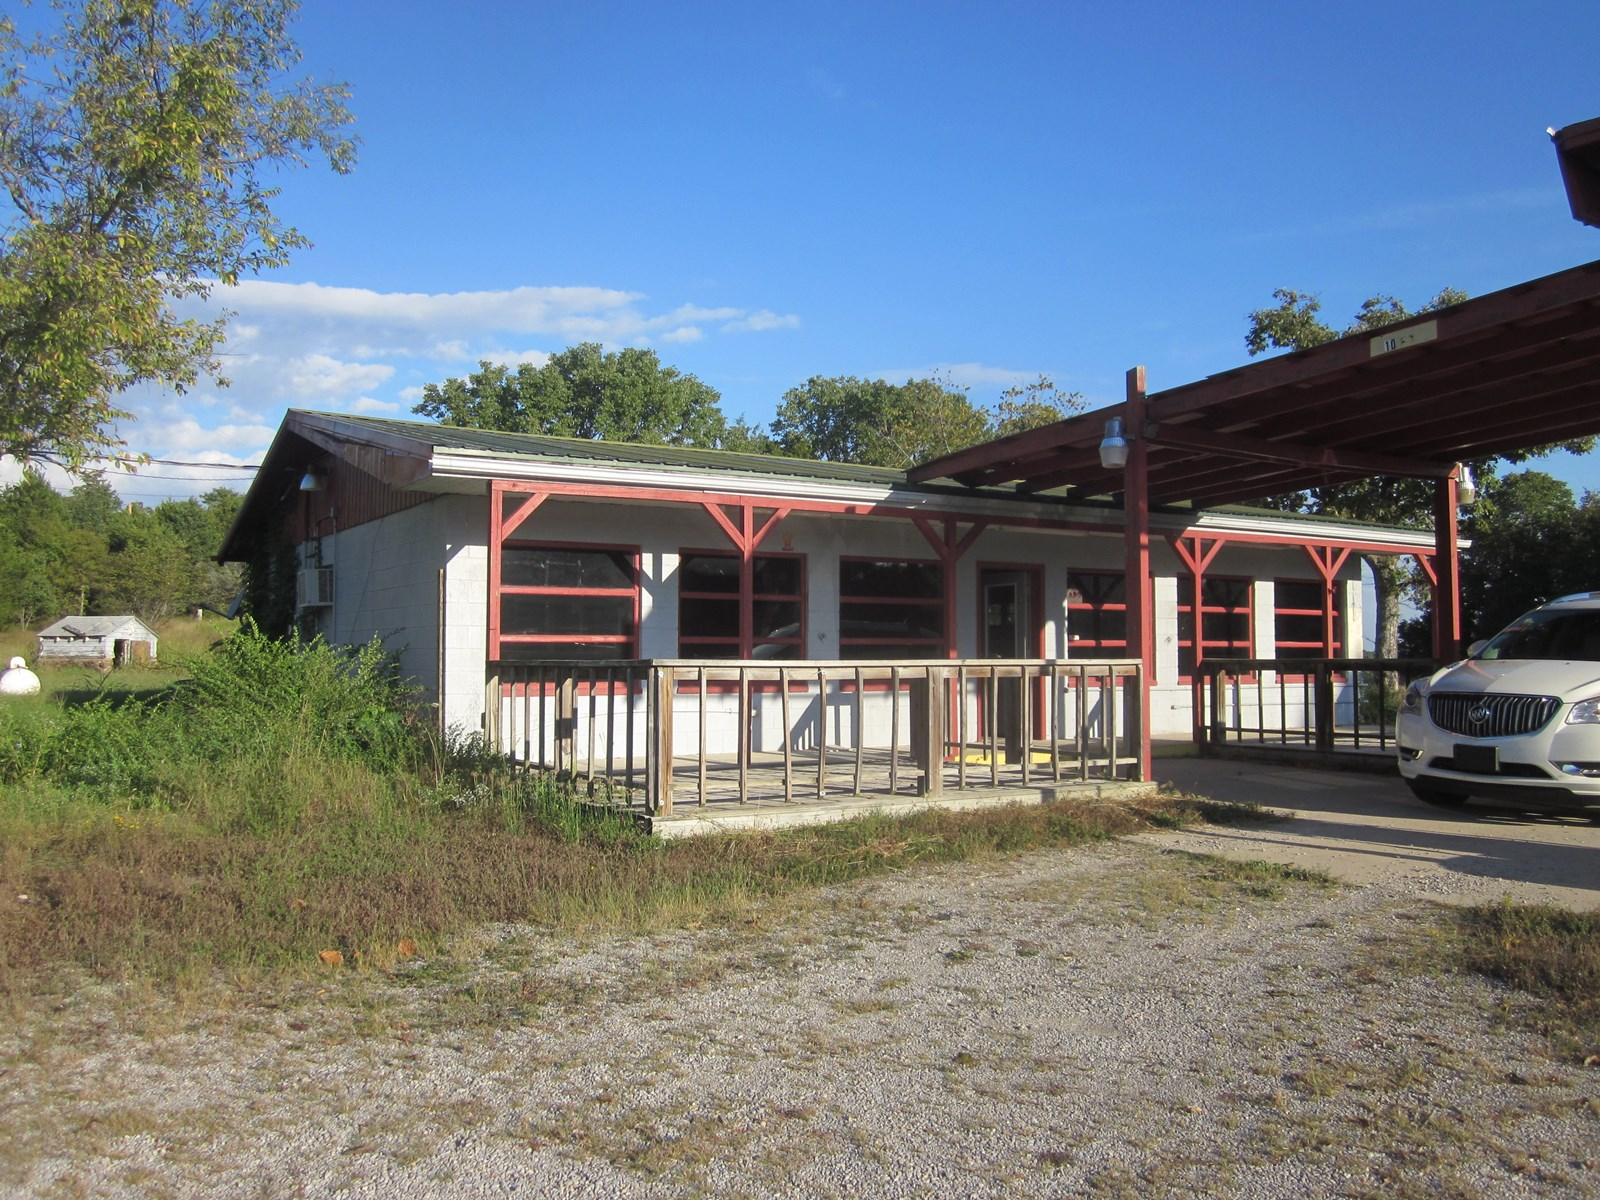 Commercial Property for Sale Near Mountain Home Arkansas